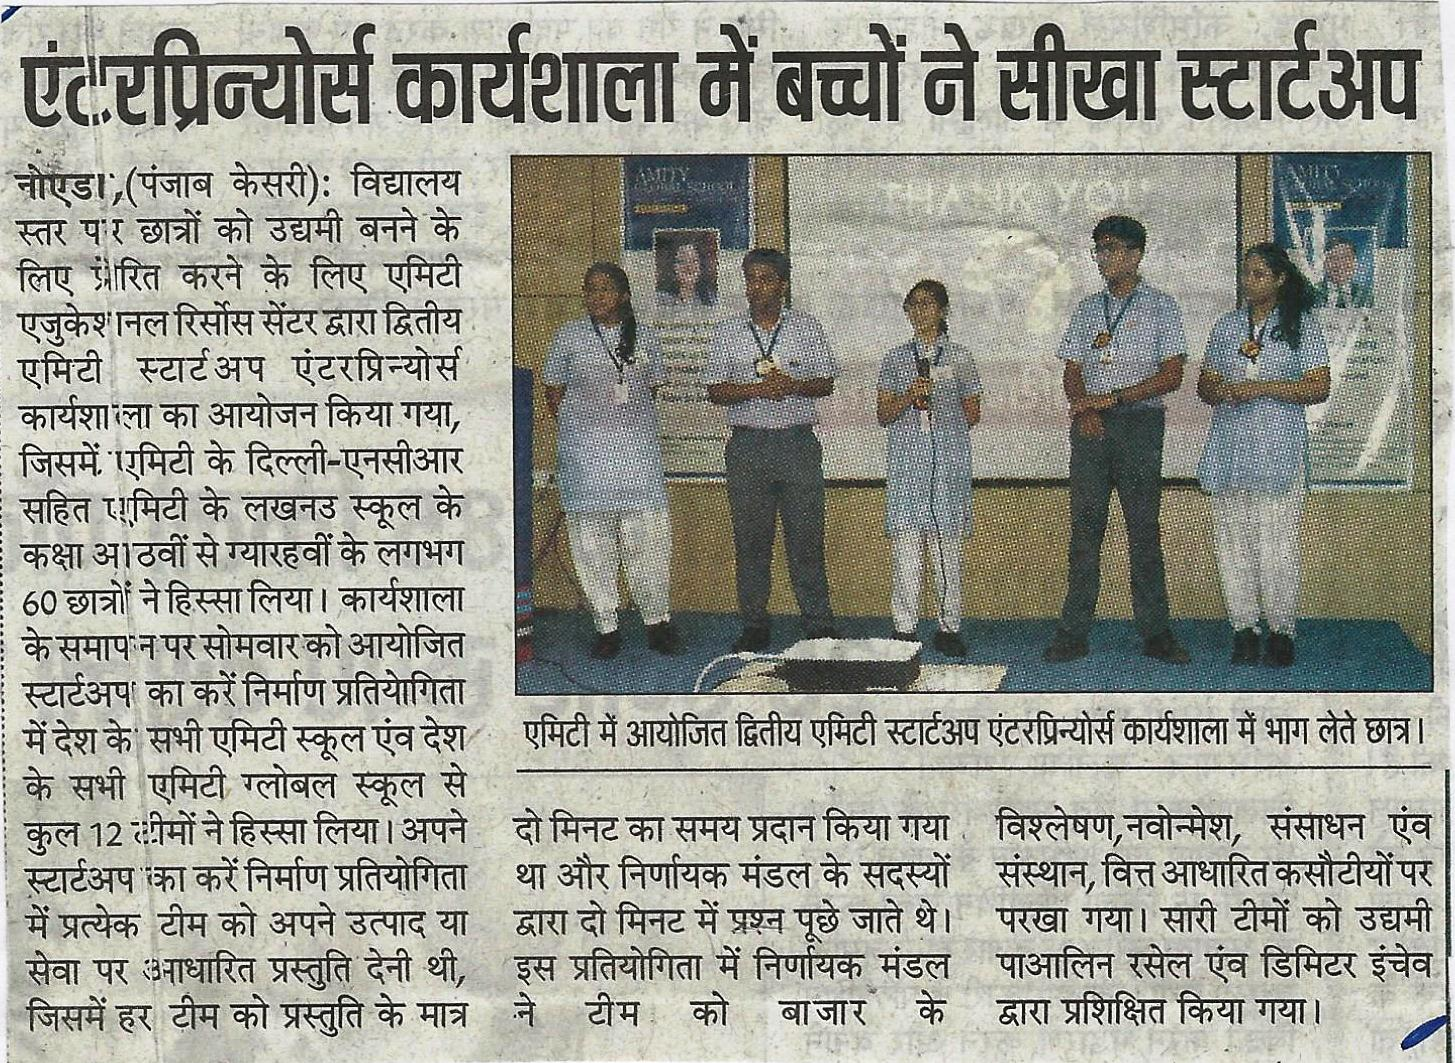 2nd Amity Start Up- Entrepreneurship Workshop held at Amity Global School, Noida - Amity Events